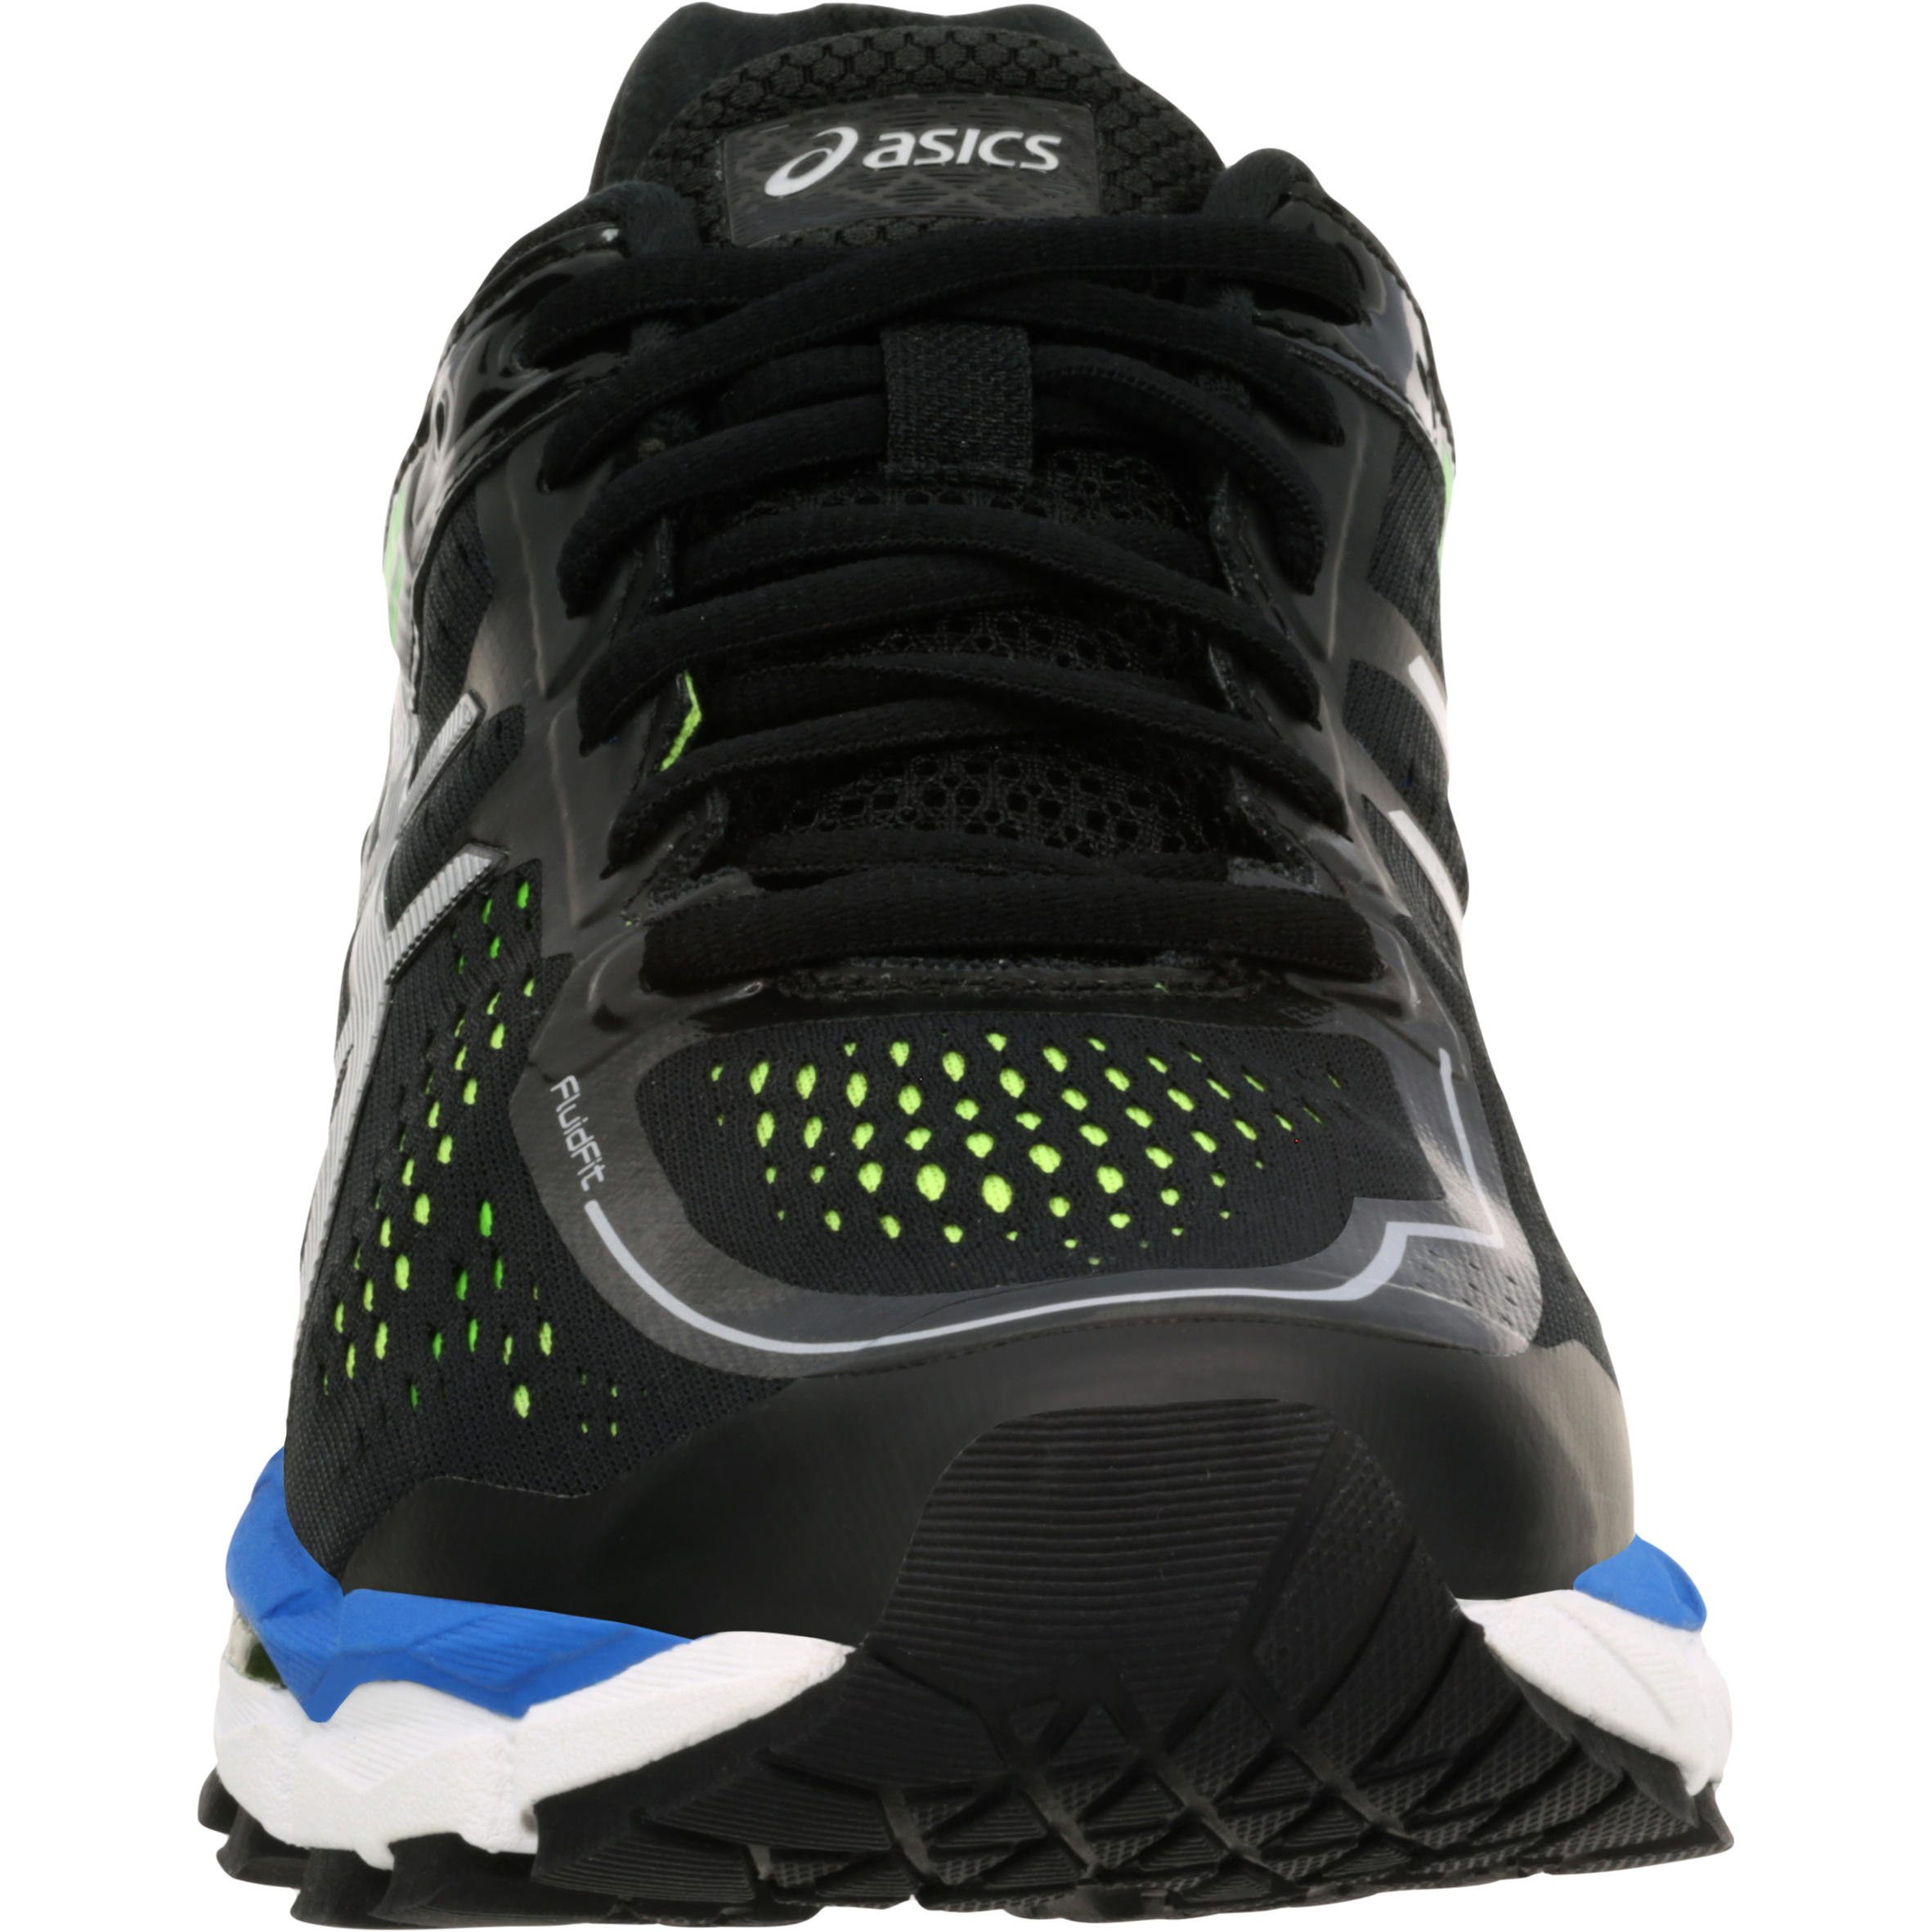 Gel Asics Homme Chaussures Running Kayano 22 qUzMSVp